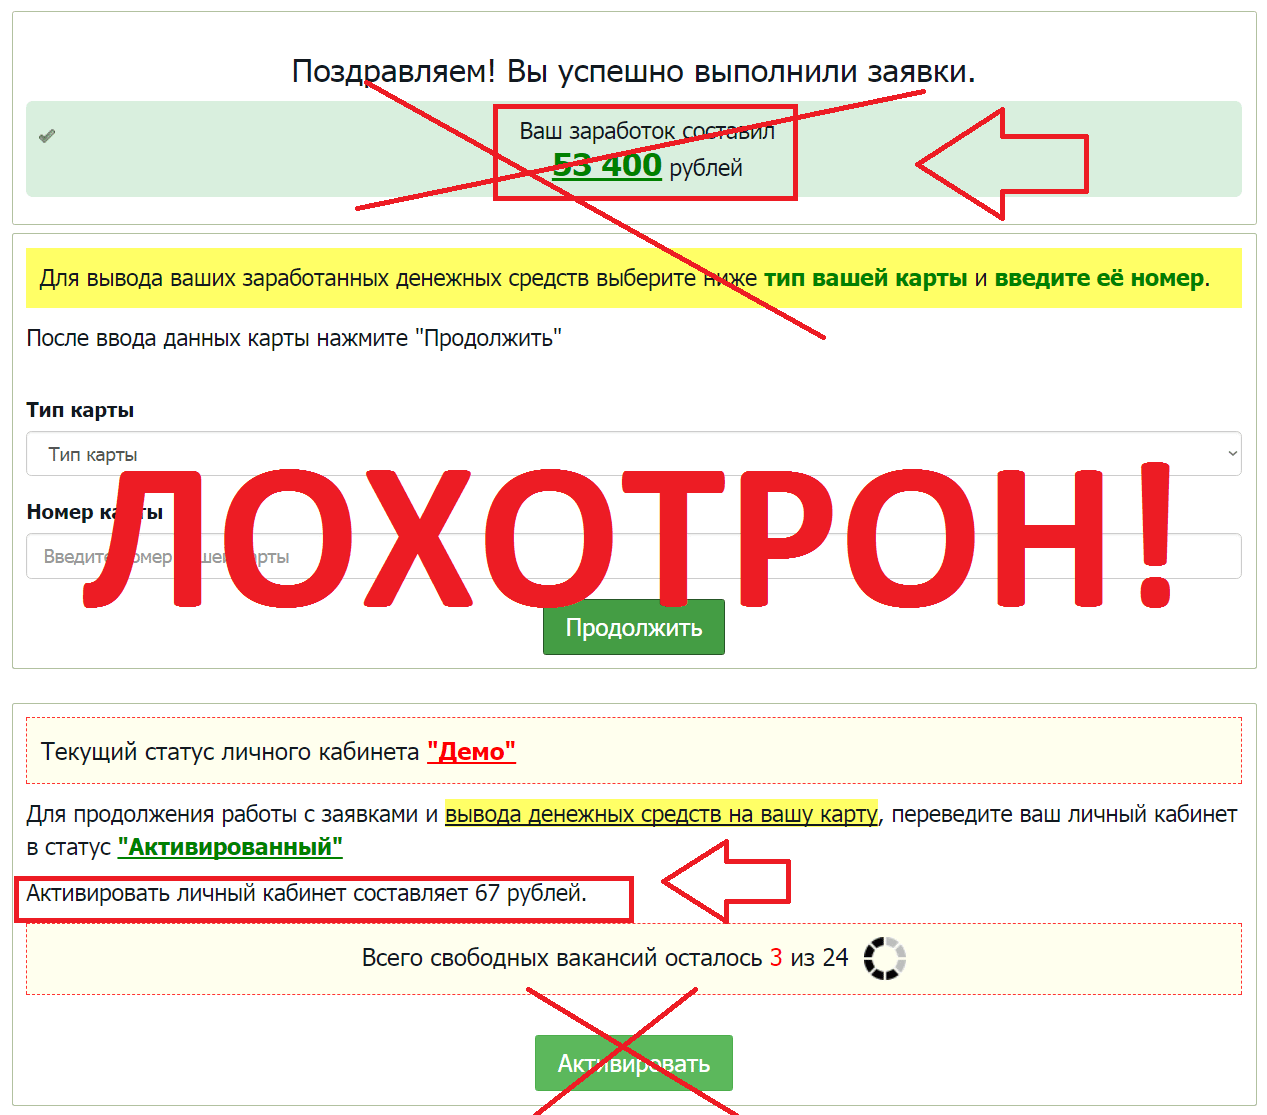 http://nifigasebe.net/wp-content/uploads/2017/07/blagotvorgamizloh4.png